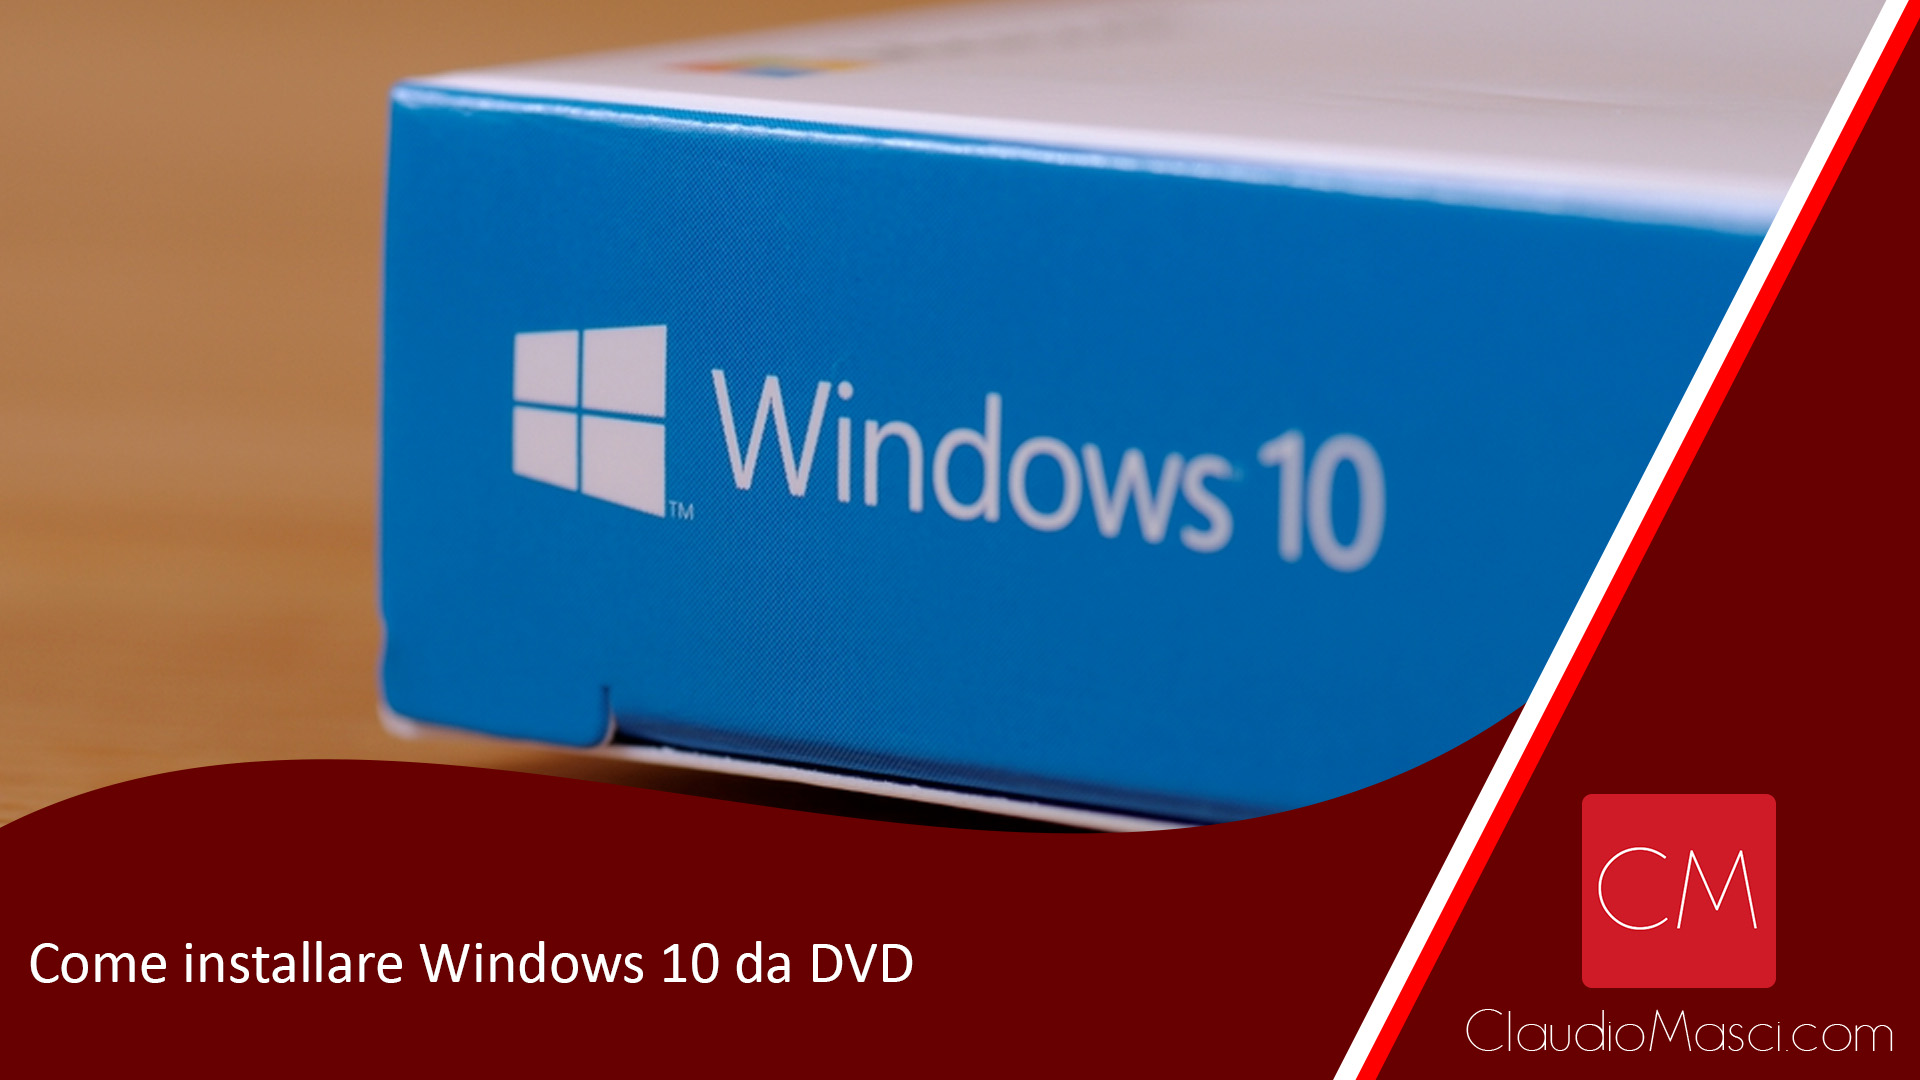 Come installare Windows 10 da DVD